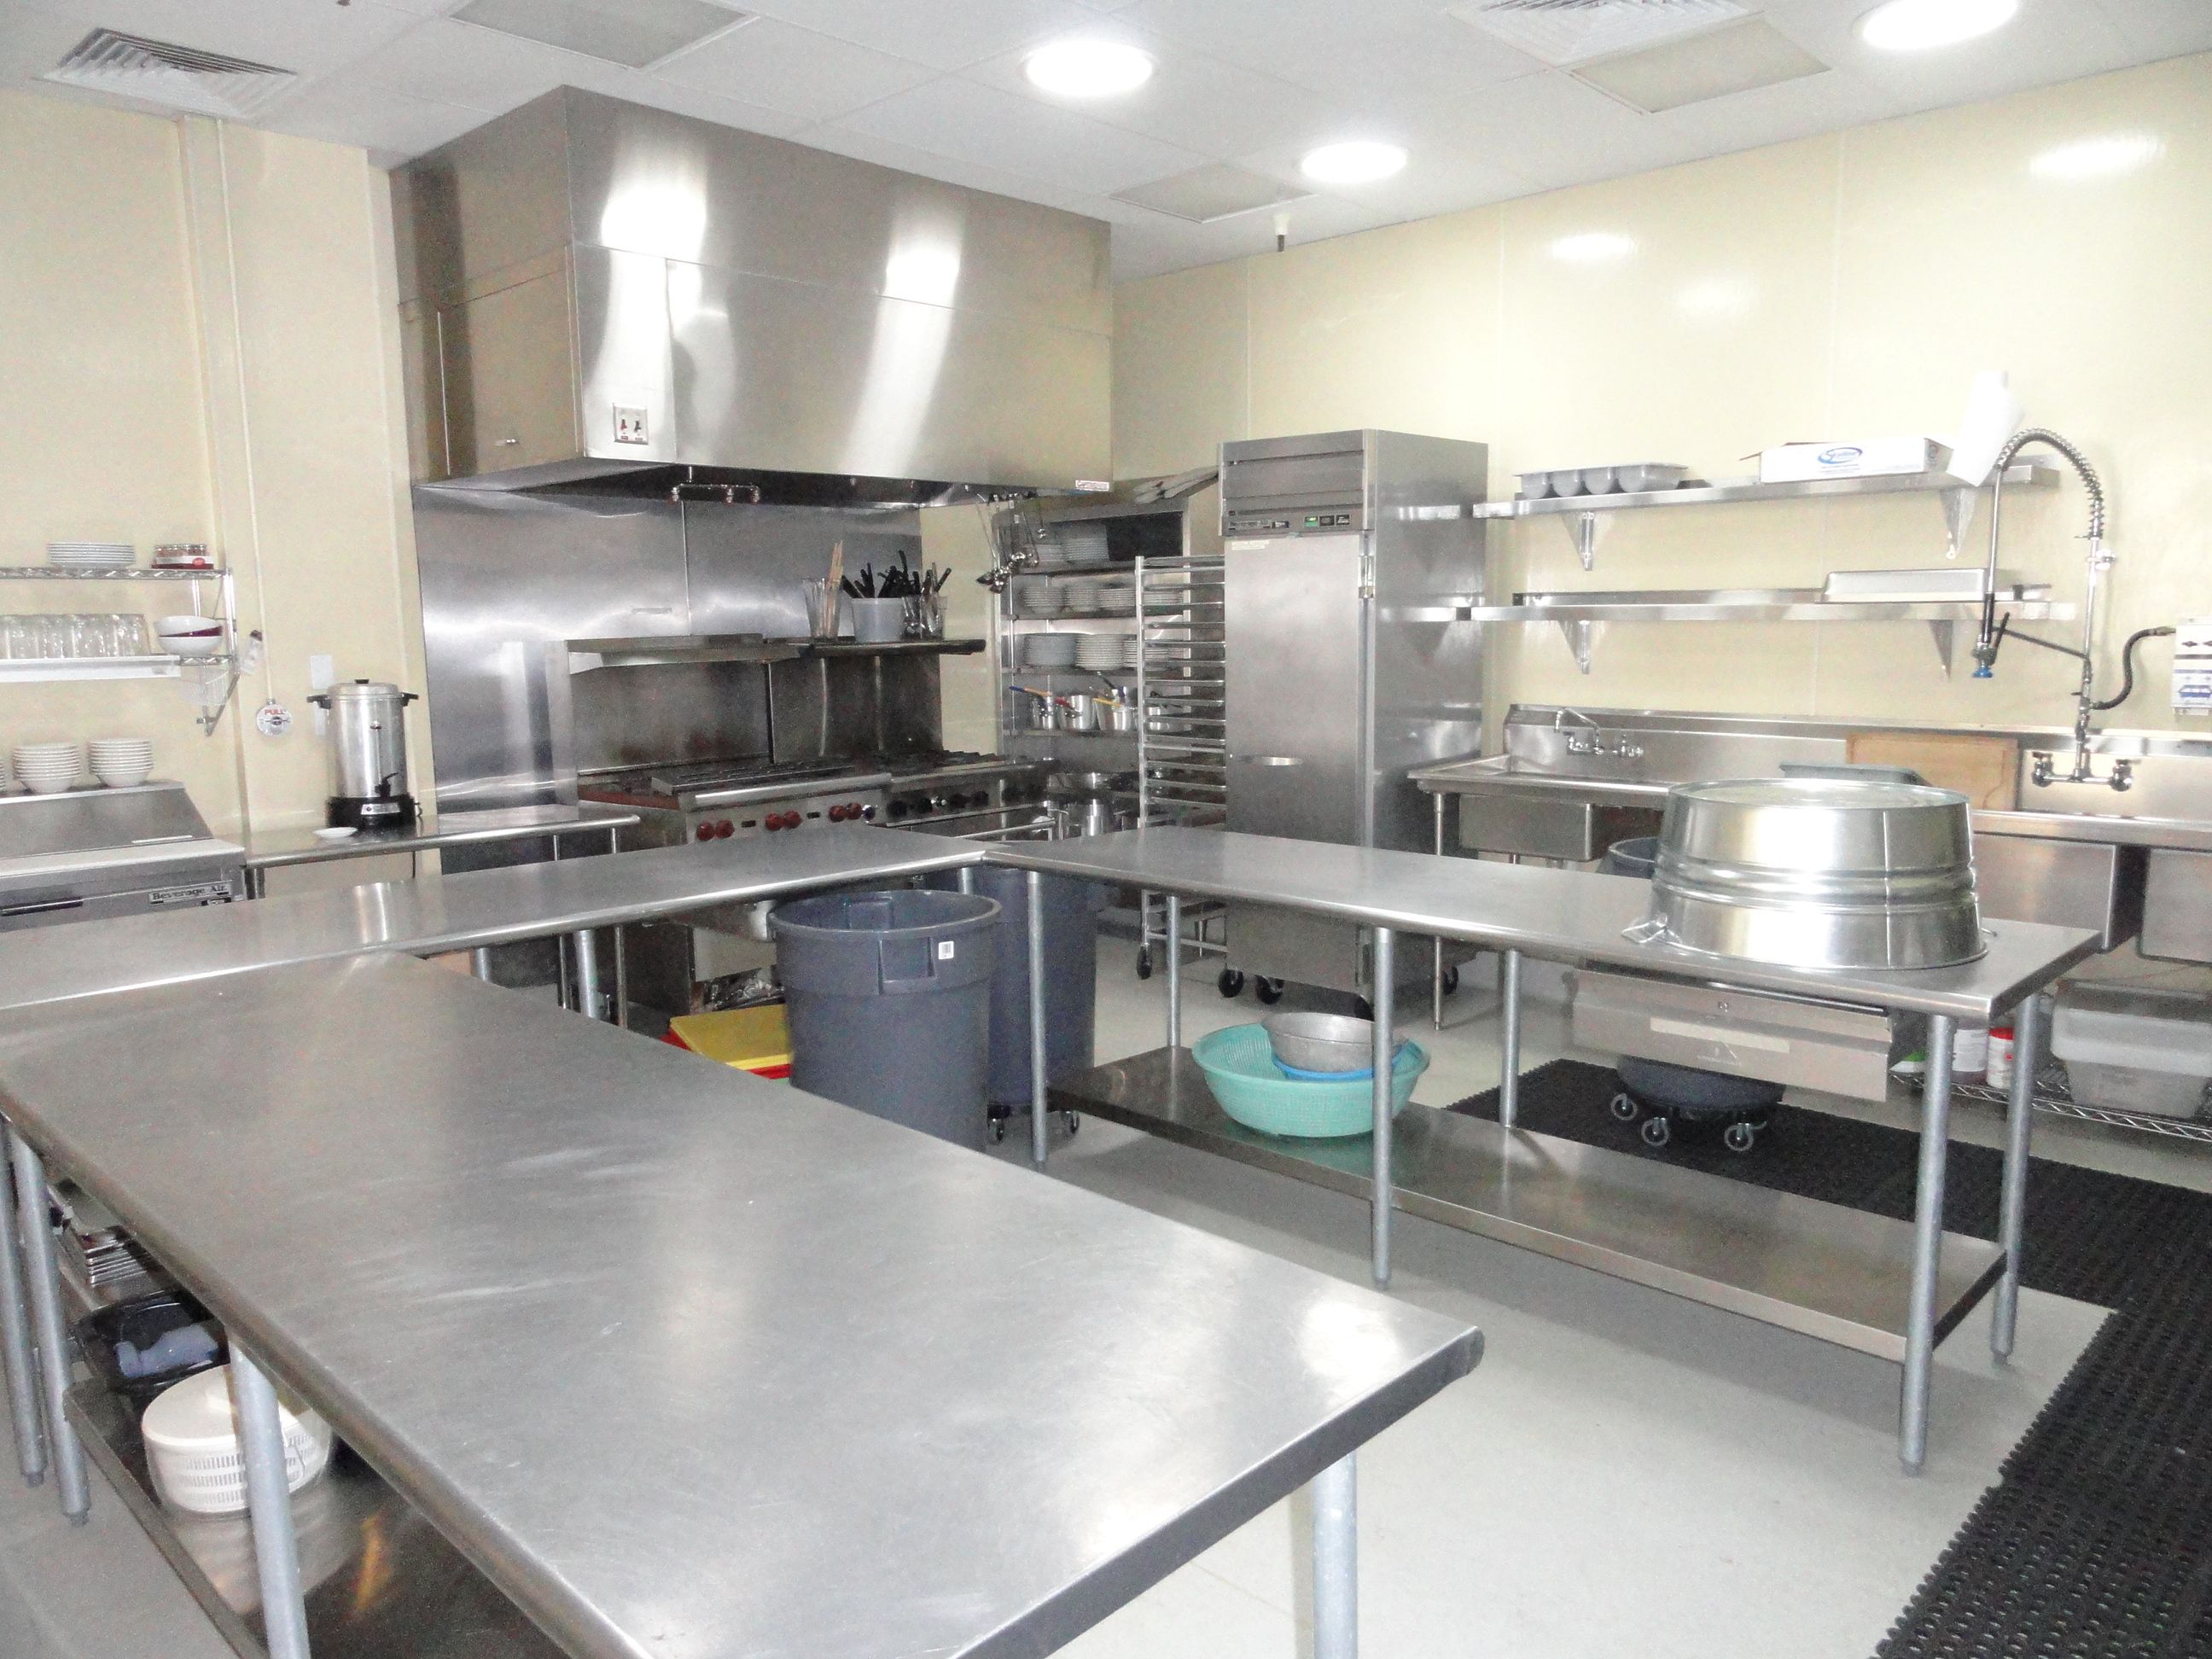 12 excellent small commercial kitchen equipment digital for Small commercial kitchen layout ideas